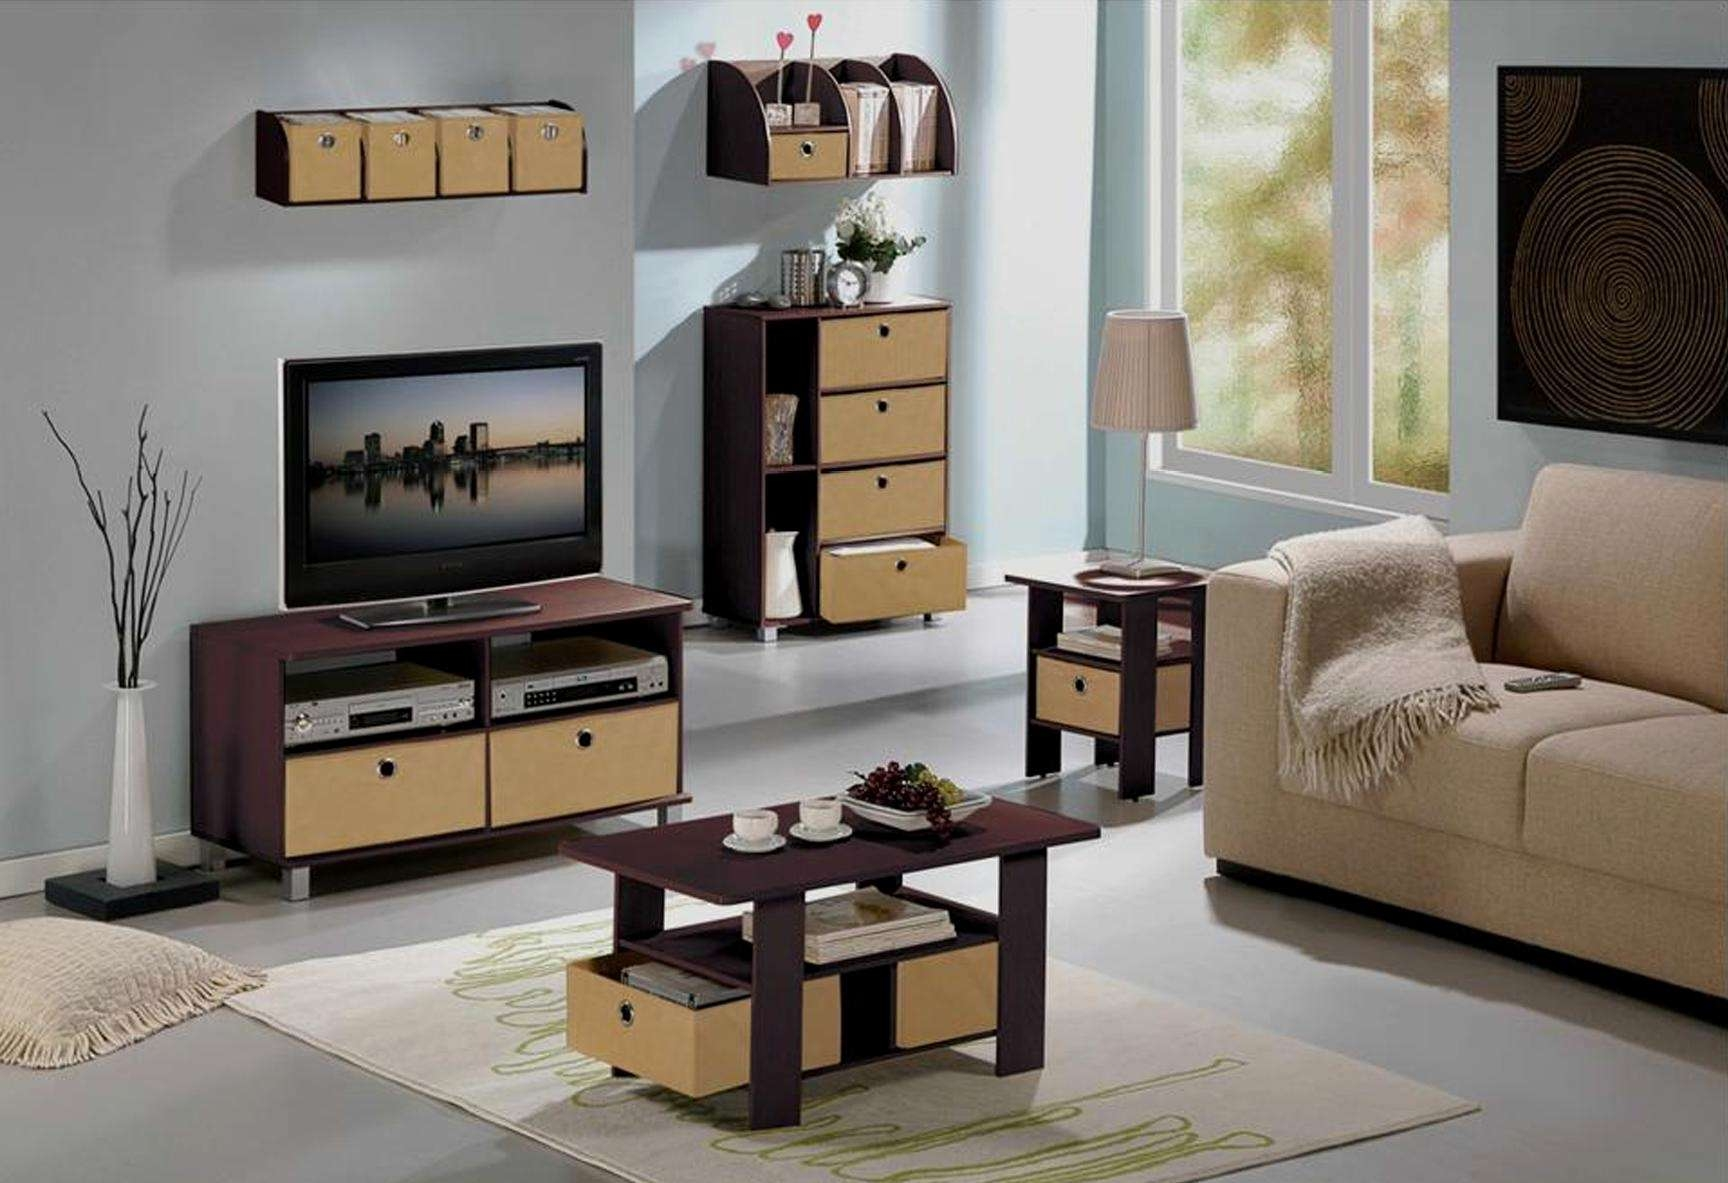 35 Best Of Coffee Table And Tv Stand Set – Home Furniture Ideas Intended For Best And Newest Tv Stand Coffee Table Sets (View 1 of 20)